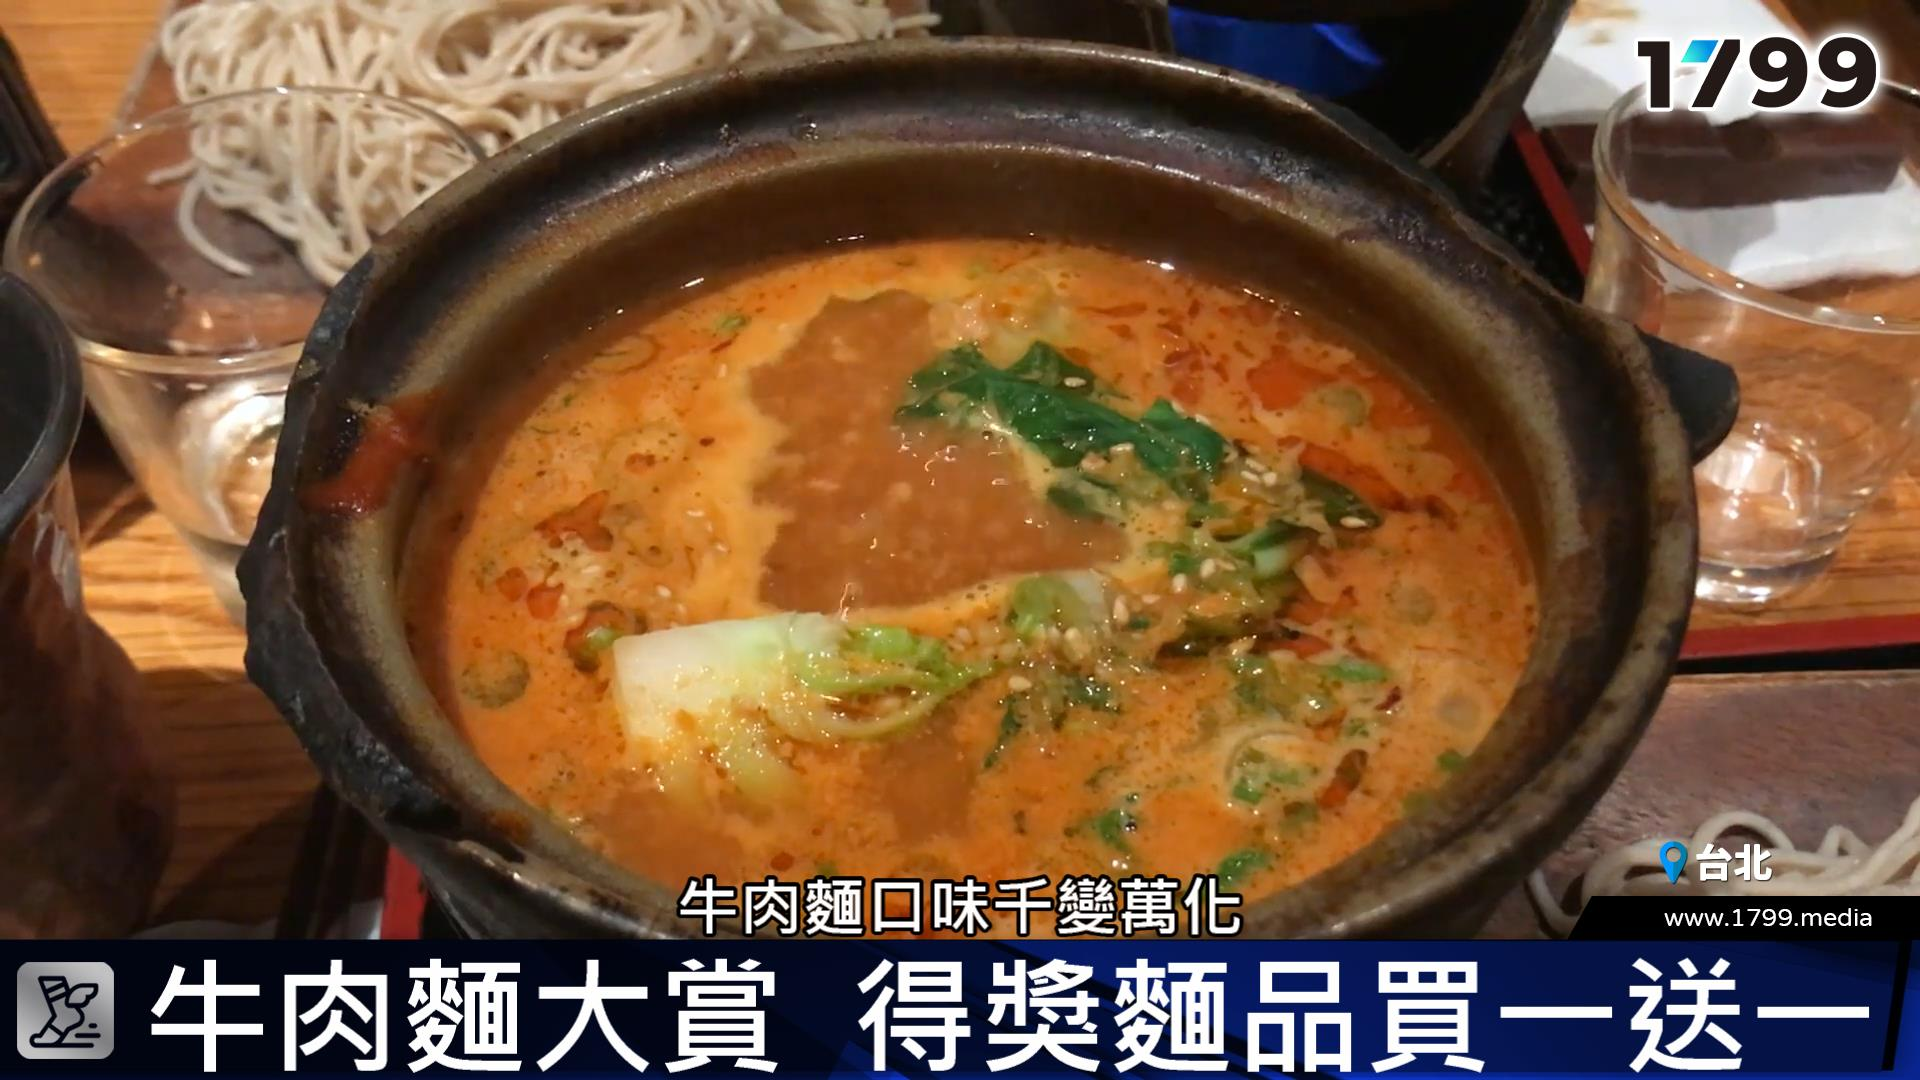 影/台北冠軍牛肉麵出爐 一魂入定好滋味